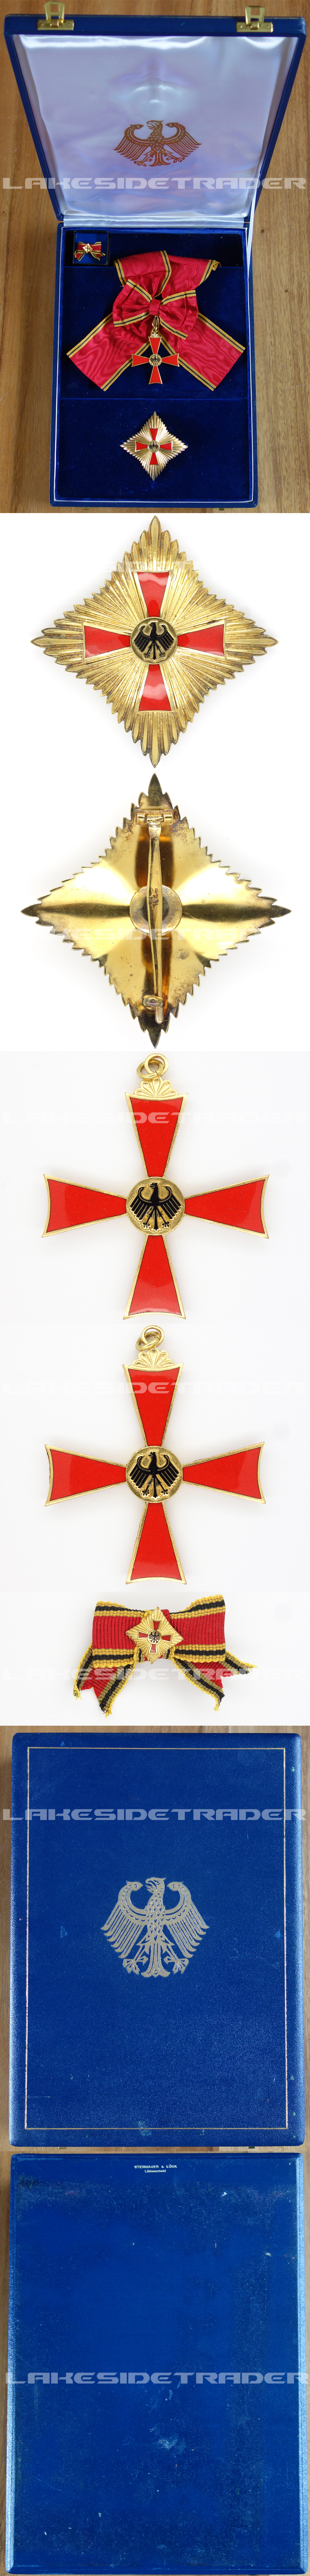 Cased Order of Merit of the Federal Republic of Germany by S&L